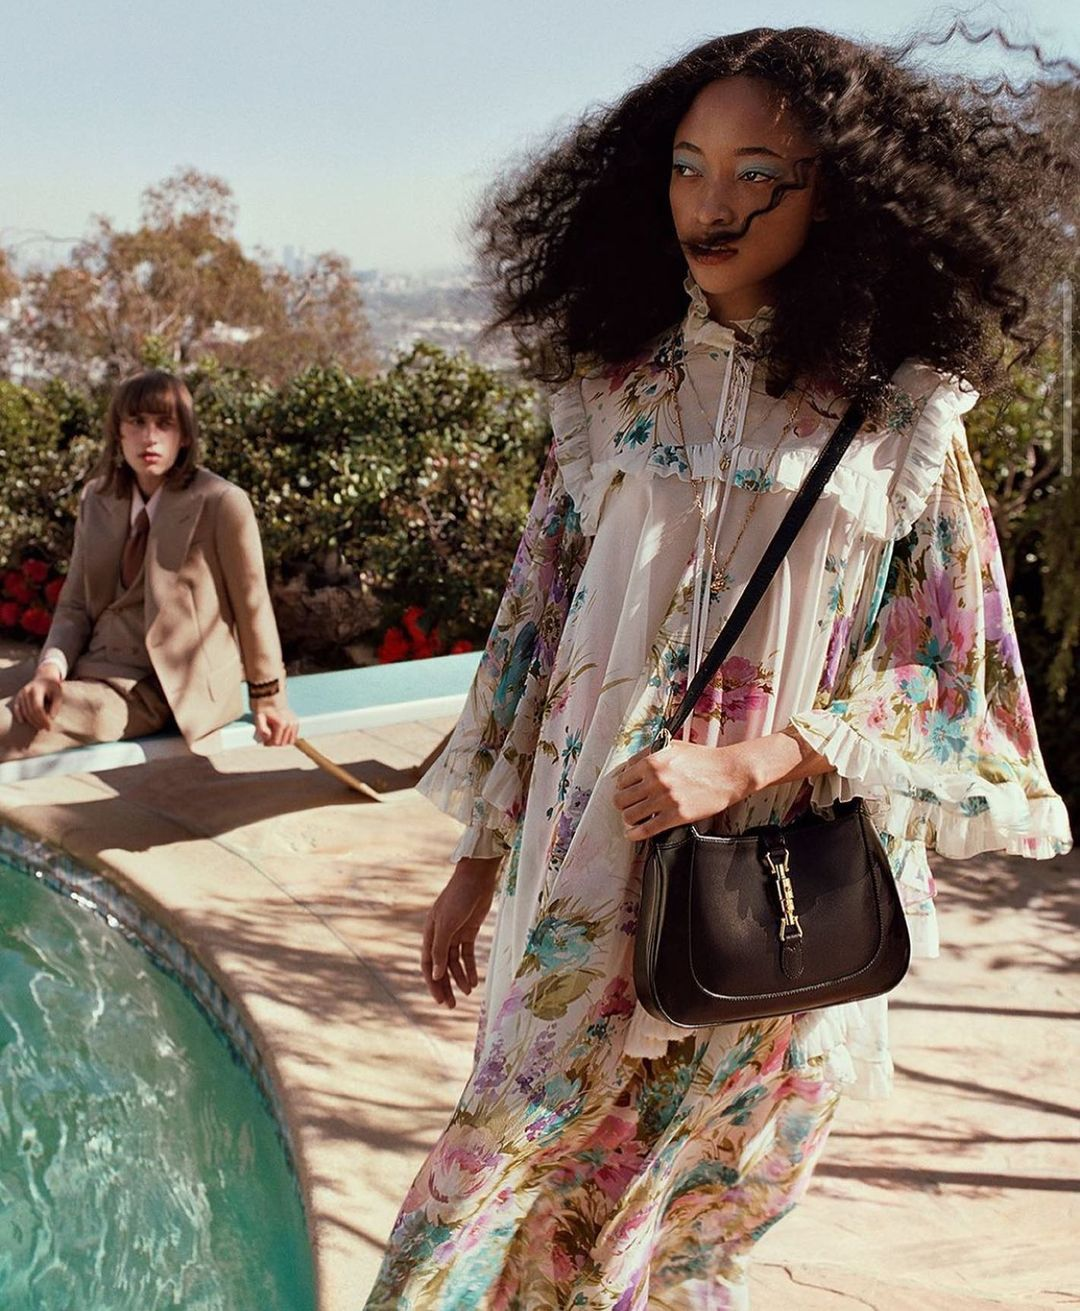 Gucci 'Ouverture Of Something That Never Ended' Spring 2021 Ad Campaign Photos